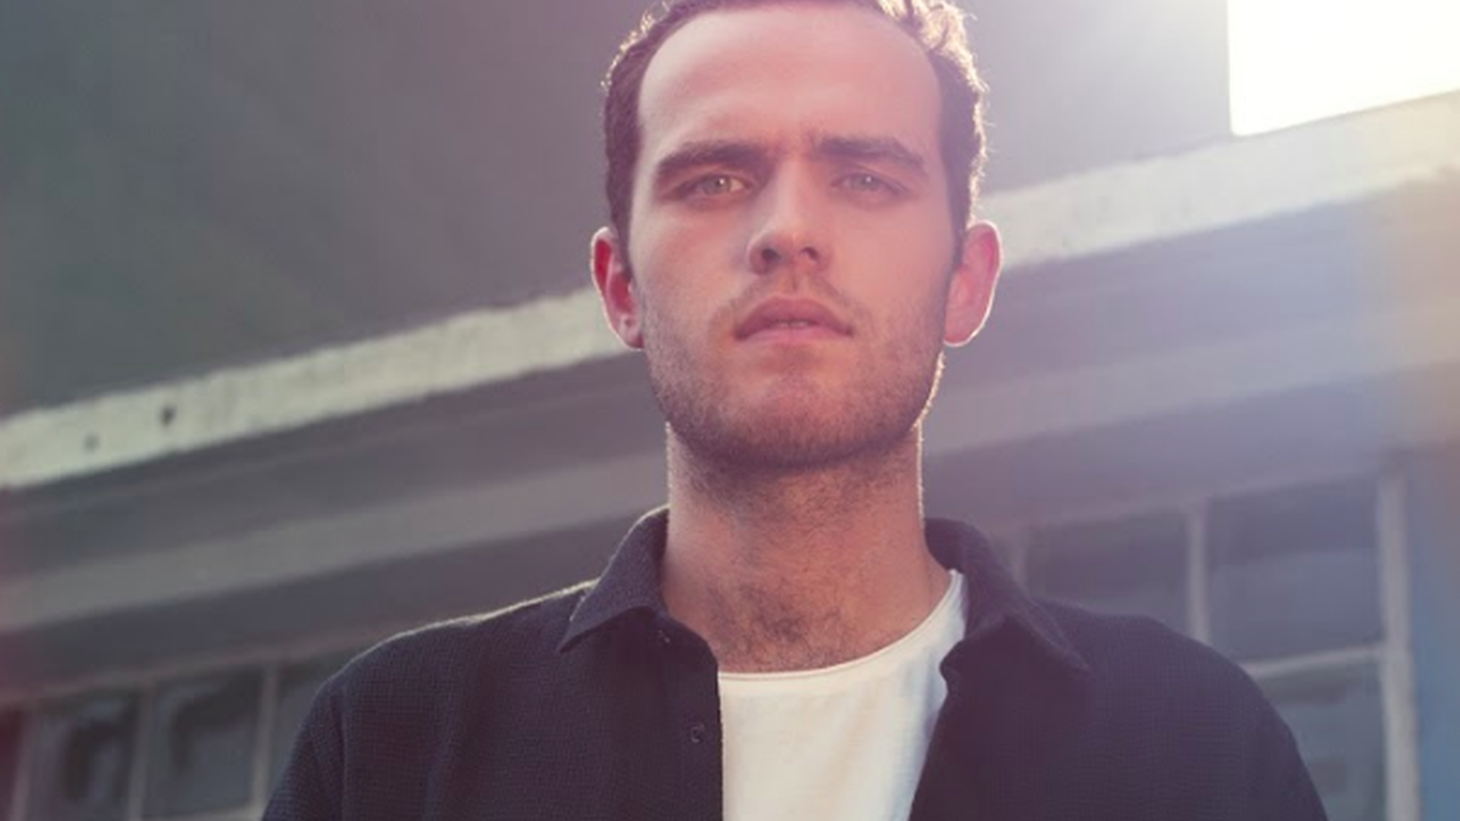 He's a rare talent emerging from London's current nexus of jazz, hip-hop, and electronic musicians. We expect you'll be hearing the name Jordan Rakei for many years to come.